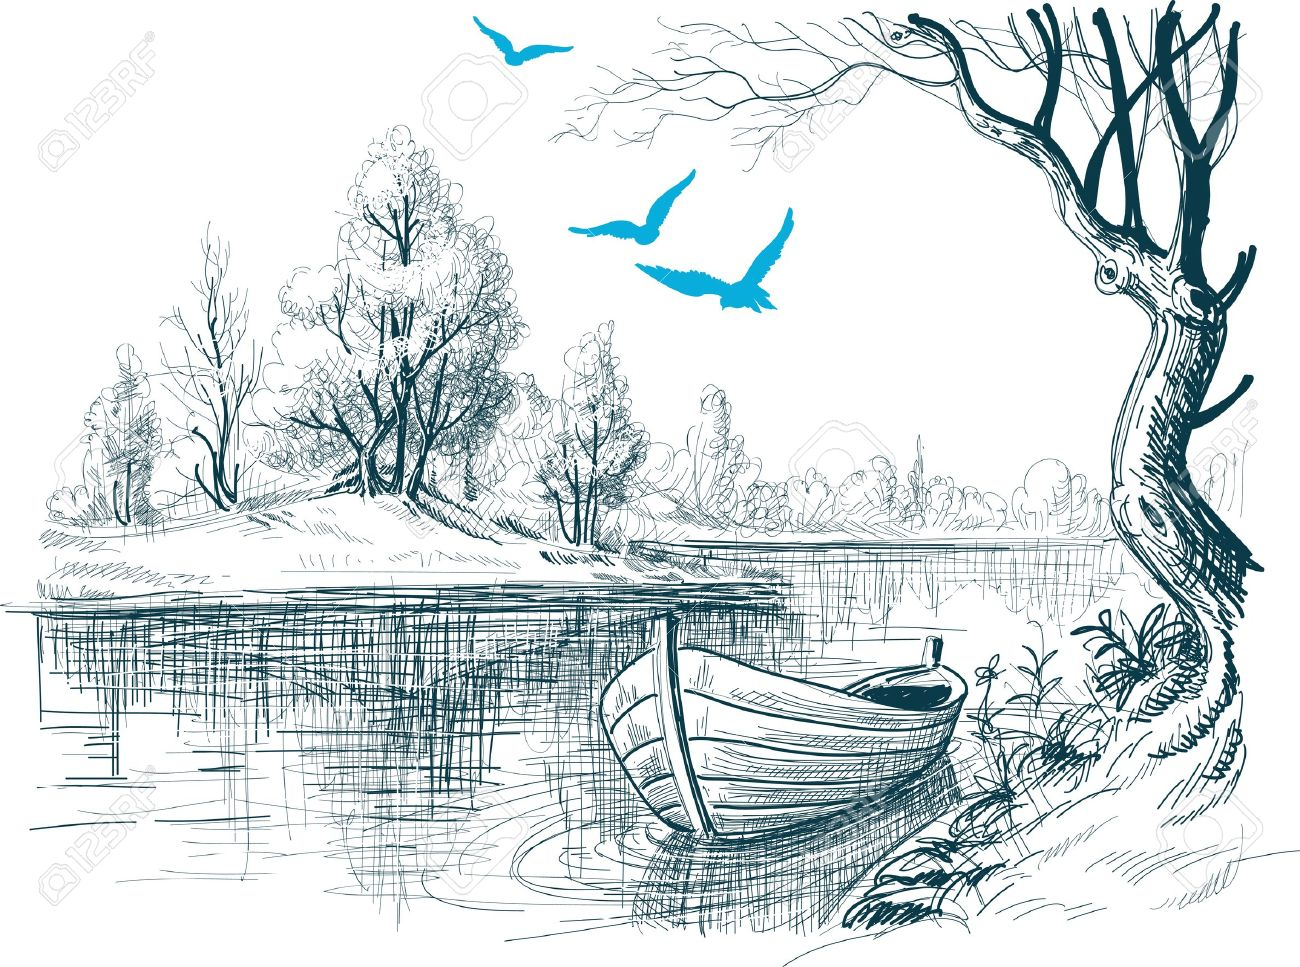 1300x967 Riverside Scenery Pencil Sketch Riverside Scenery Pencil Sketch